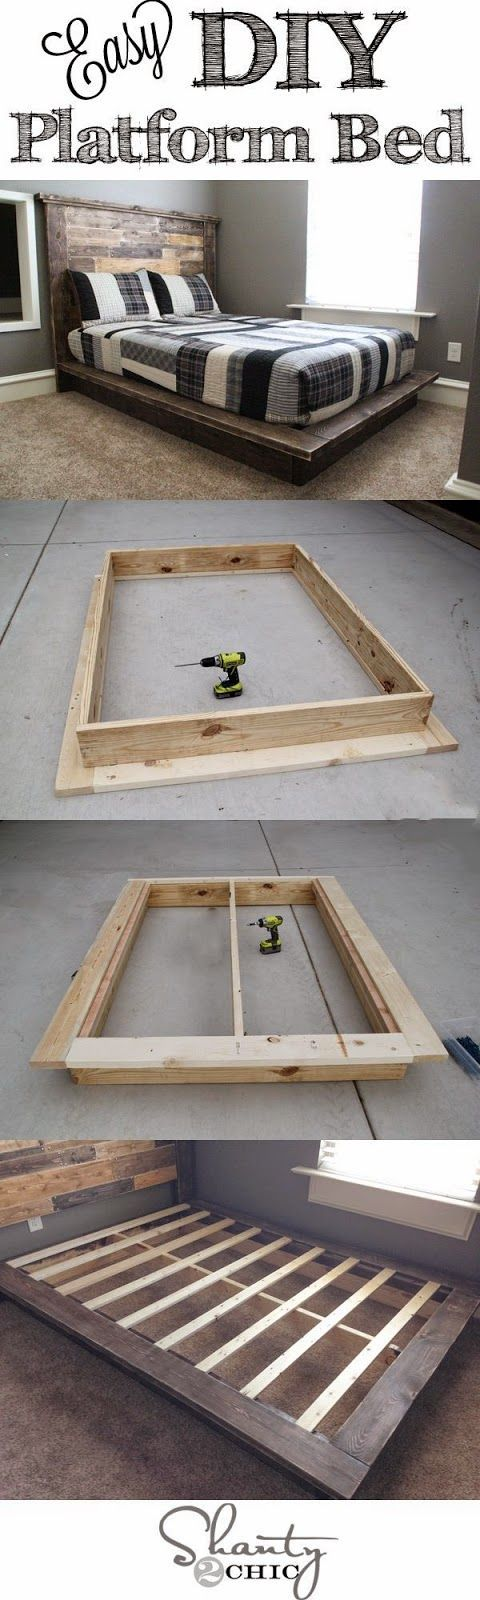 17 Easy To Build Diy Platform Beds Perfect For Any Home Diy